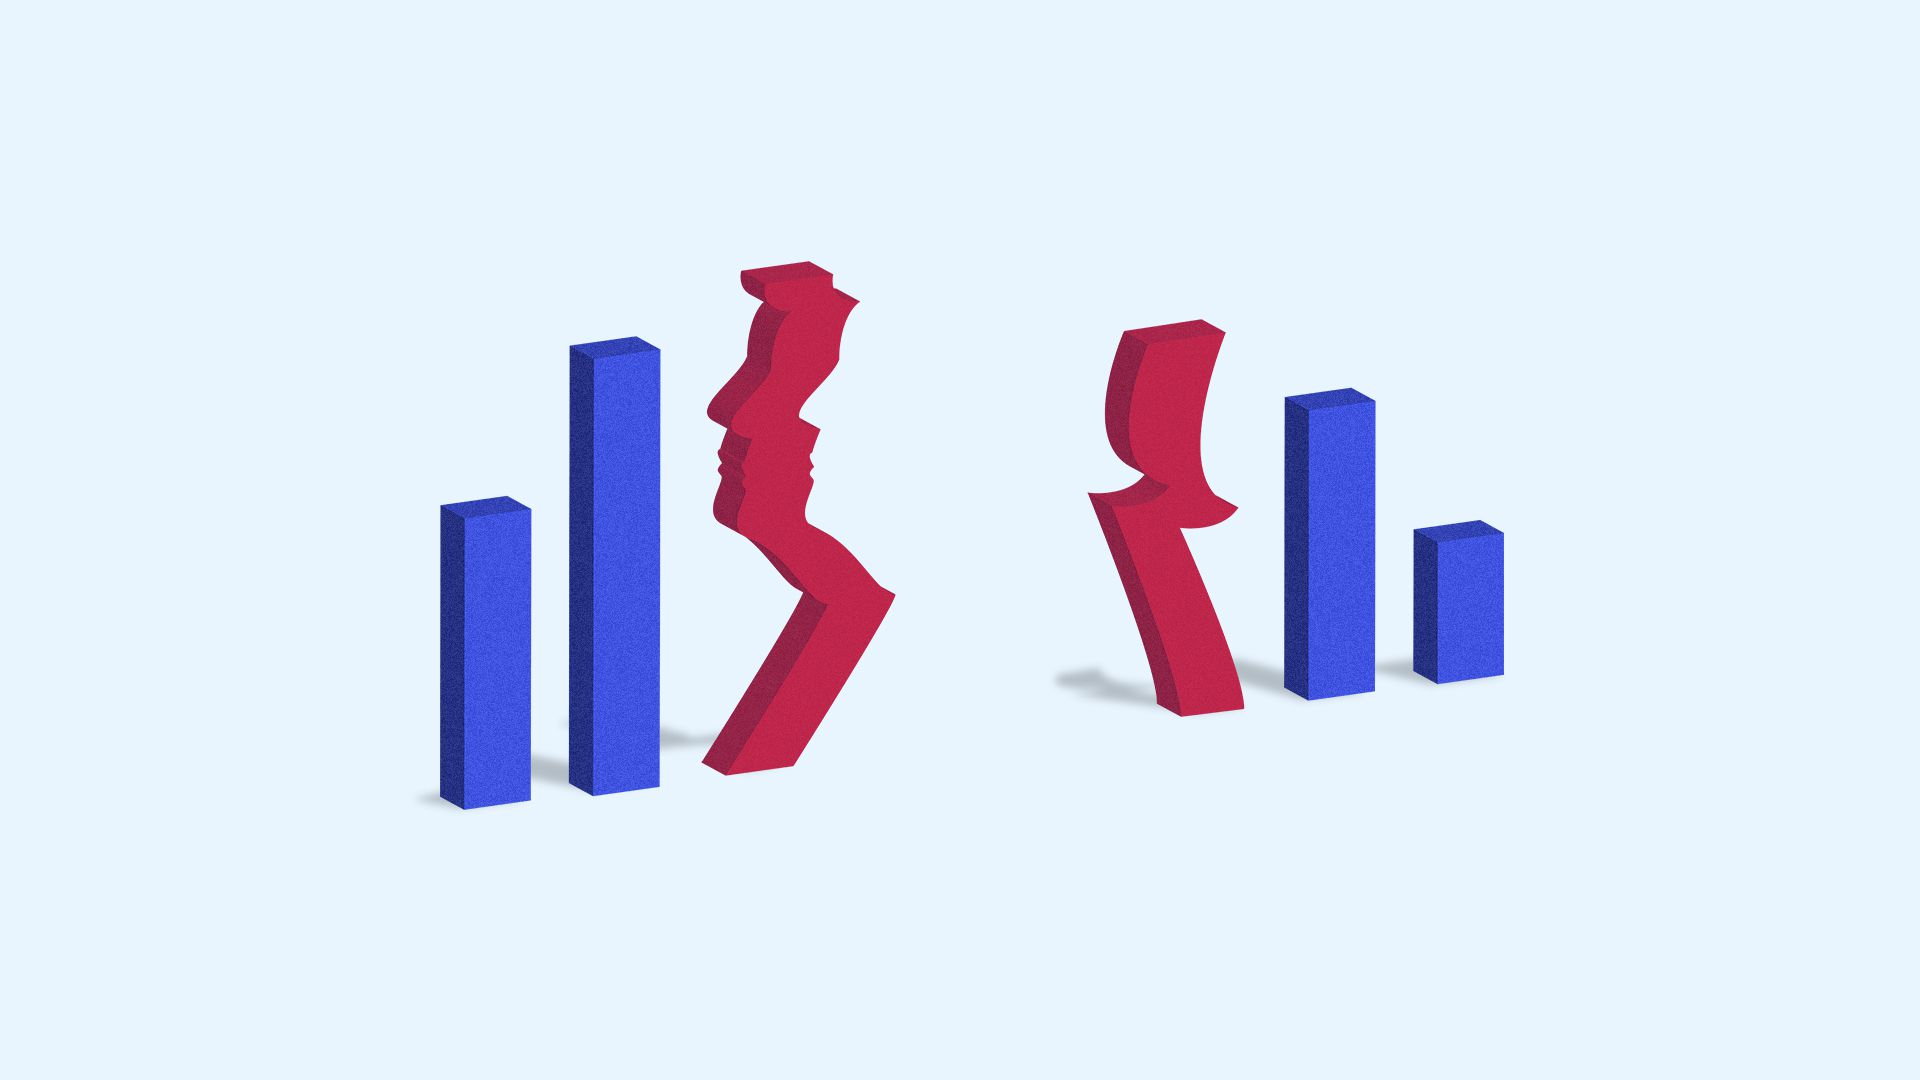 Illustration of a bar chart with Trump's silhouette in the middle